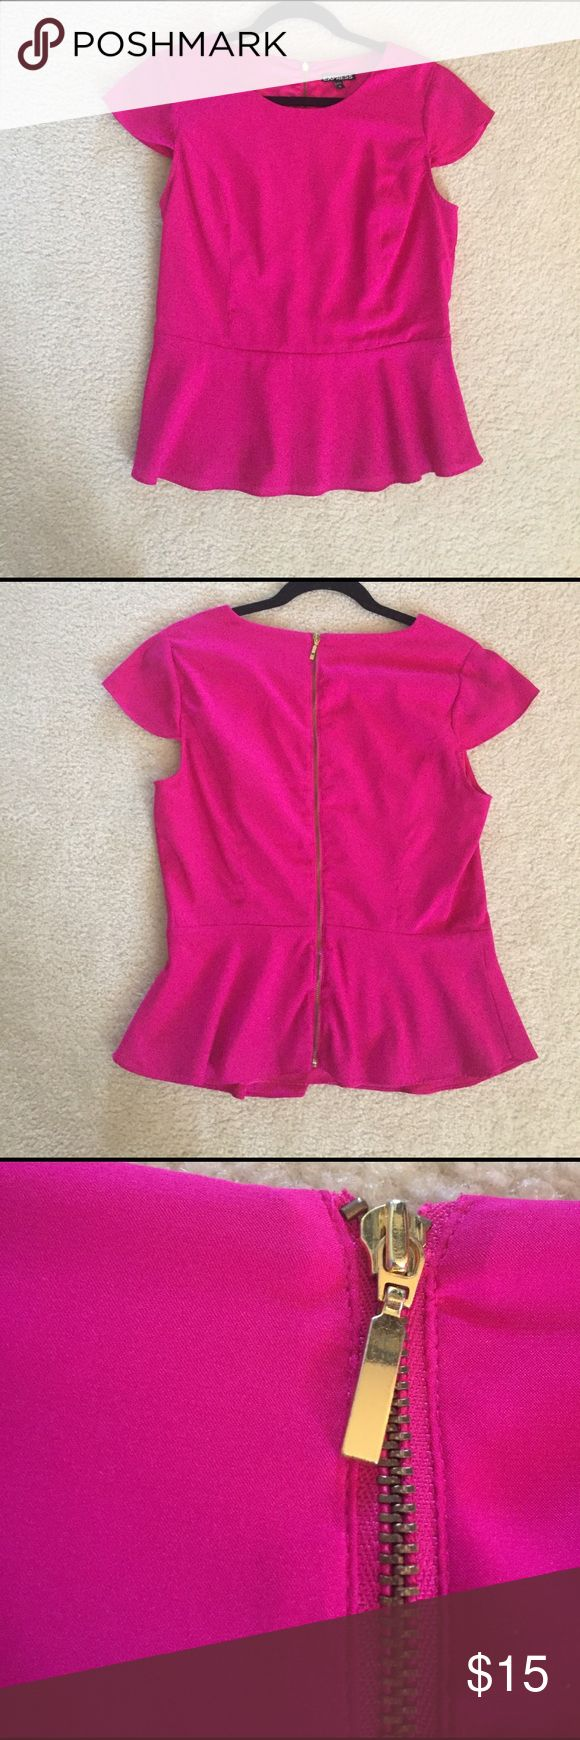 ▪️Pink Peplum Top▪️ There is a small tear in the front of the shirt, see pictures (not noticeable when on). Tops Blouses